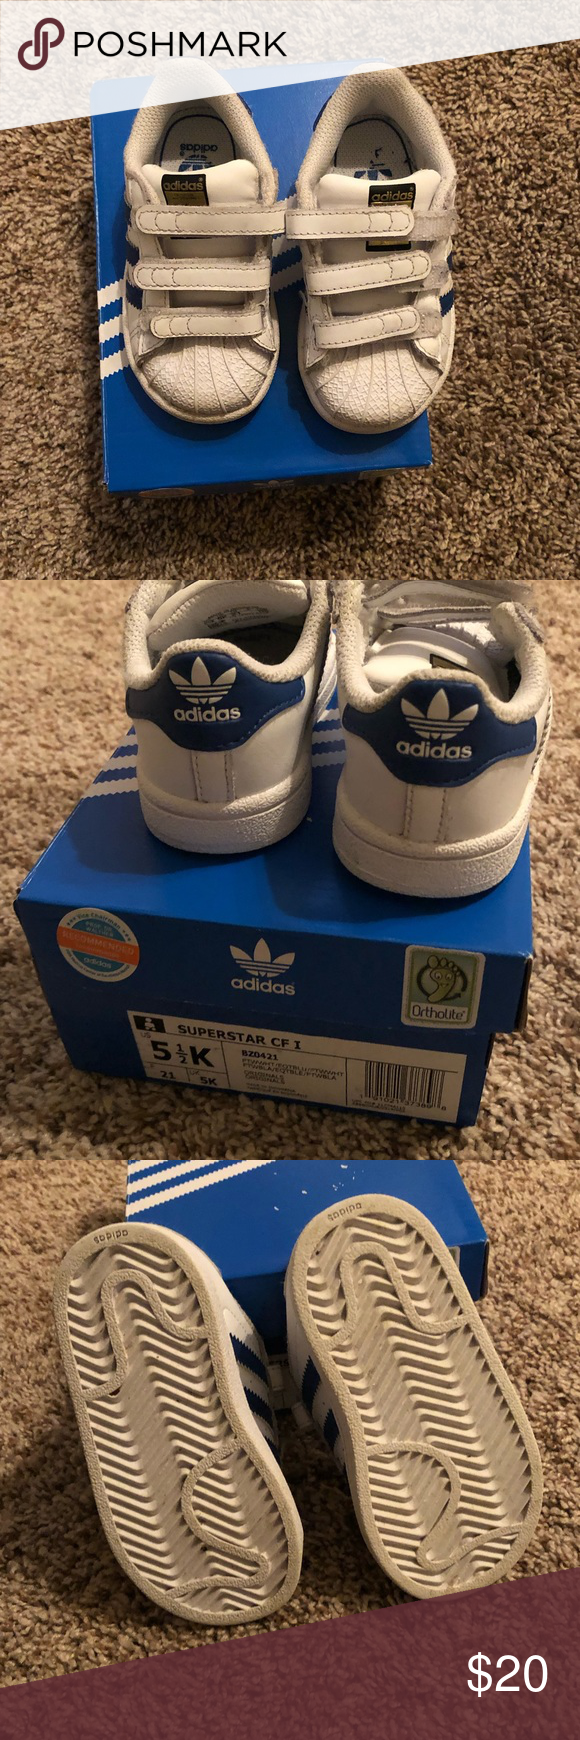 Adidas superstar baby boy shoes size 5.5 | Boy shoes, Baby ...